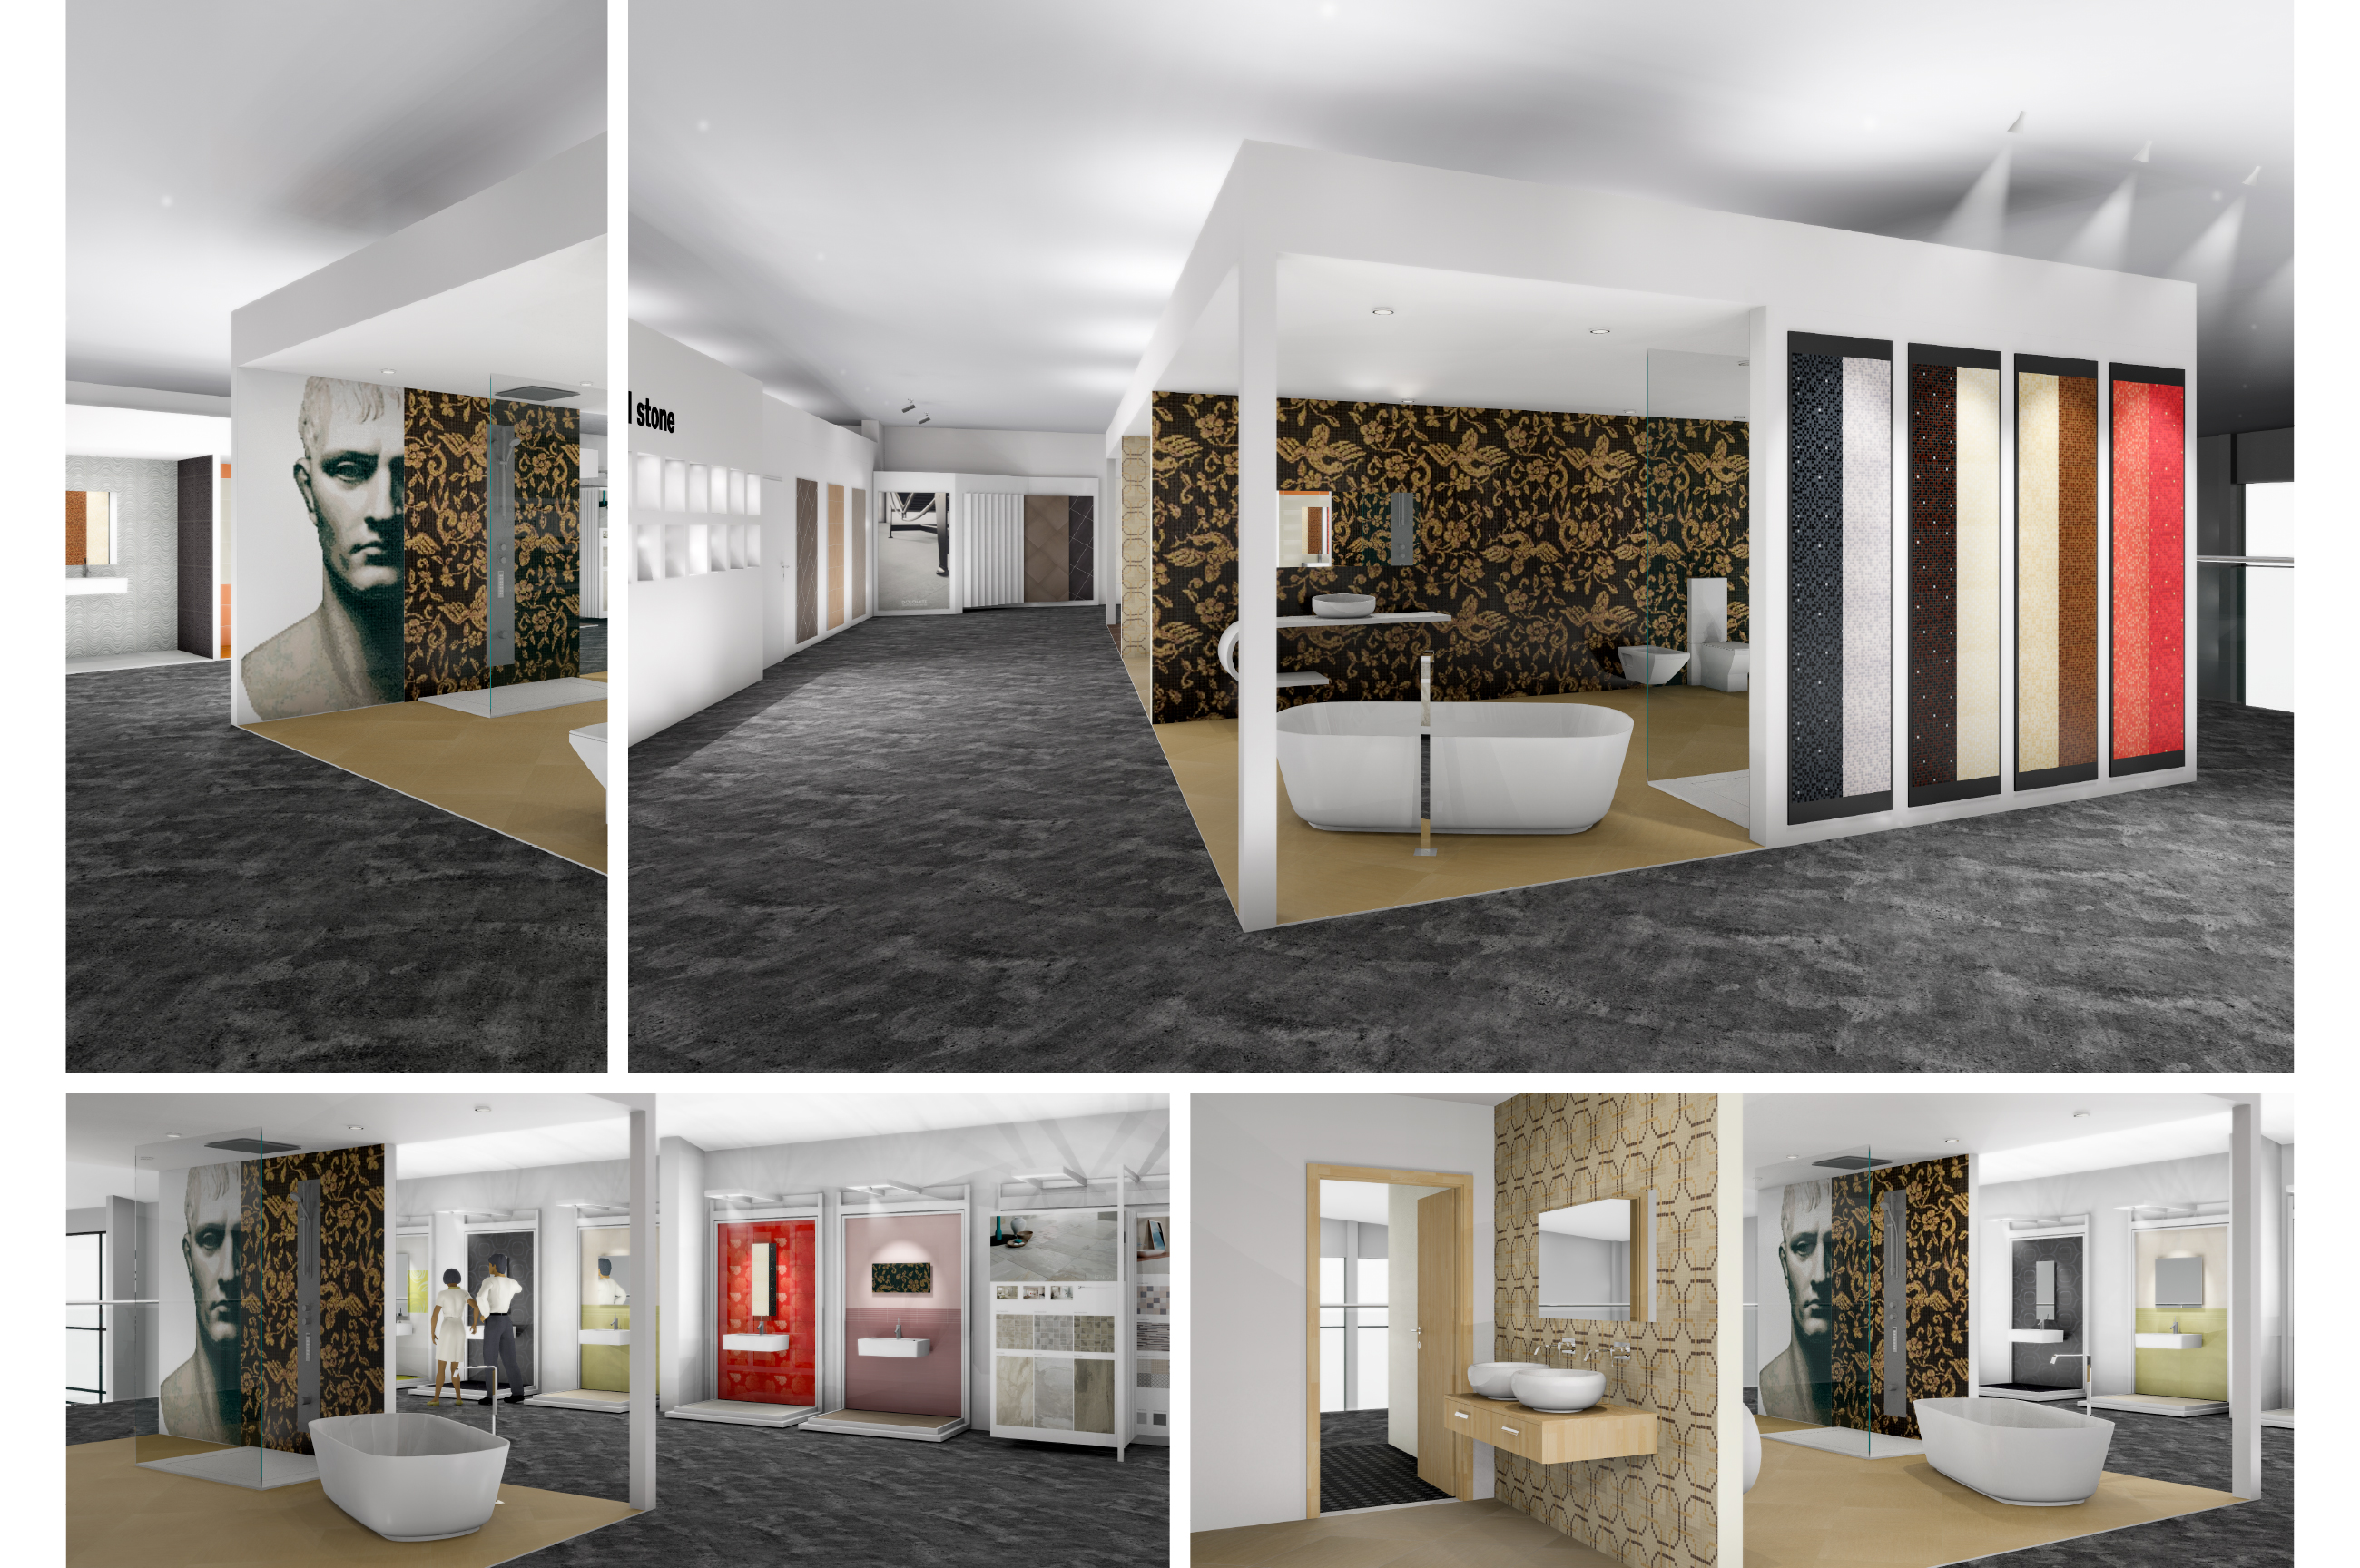 Tile Mountain showroom interior design - exclusive mosaic tiles display and bathroom